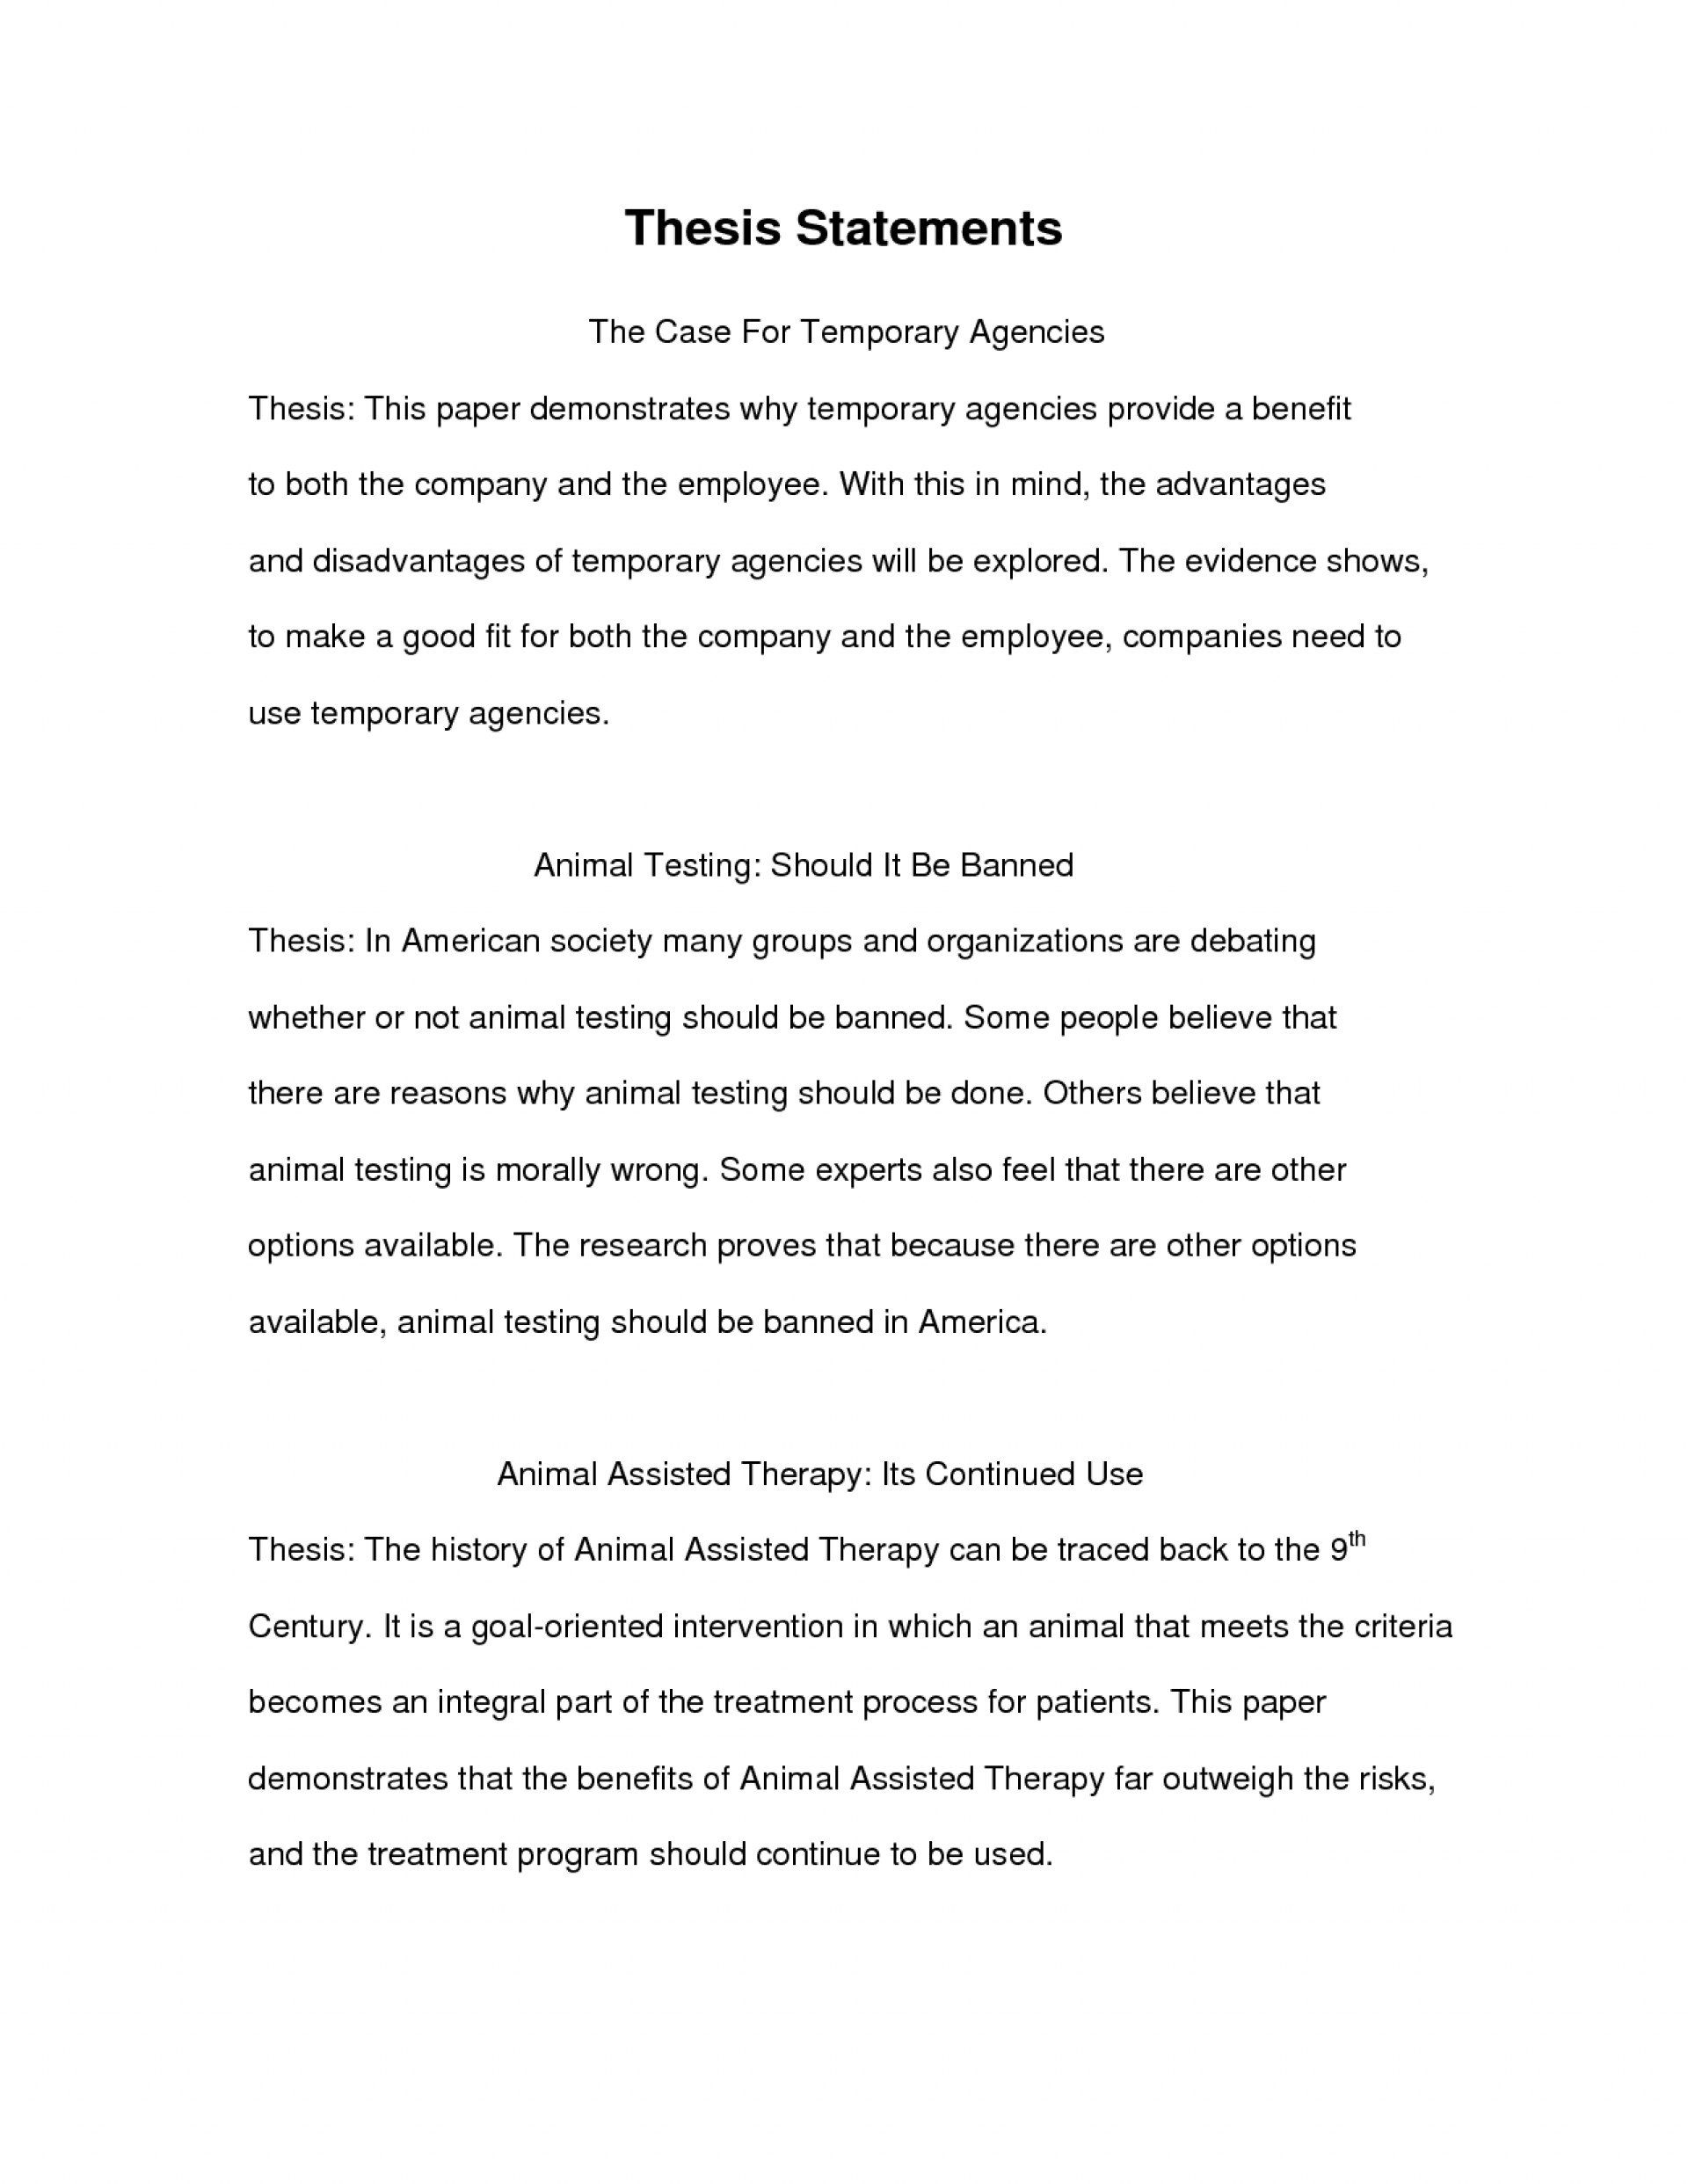 007 Argumentative Research Paper Thesis Examples Example Essay Statement Of Statements For Expository Essaysrative On Cosmetic Surgery Good Narrative Informative Best 1920